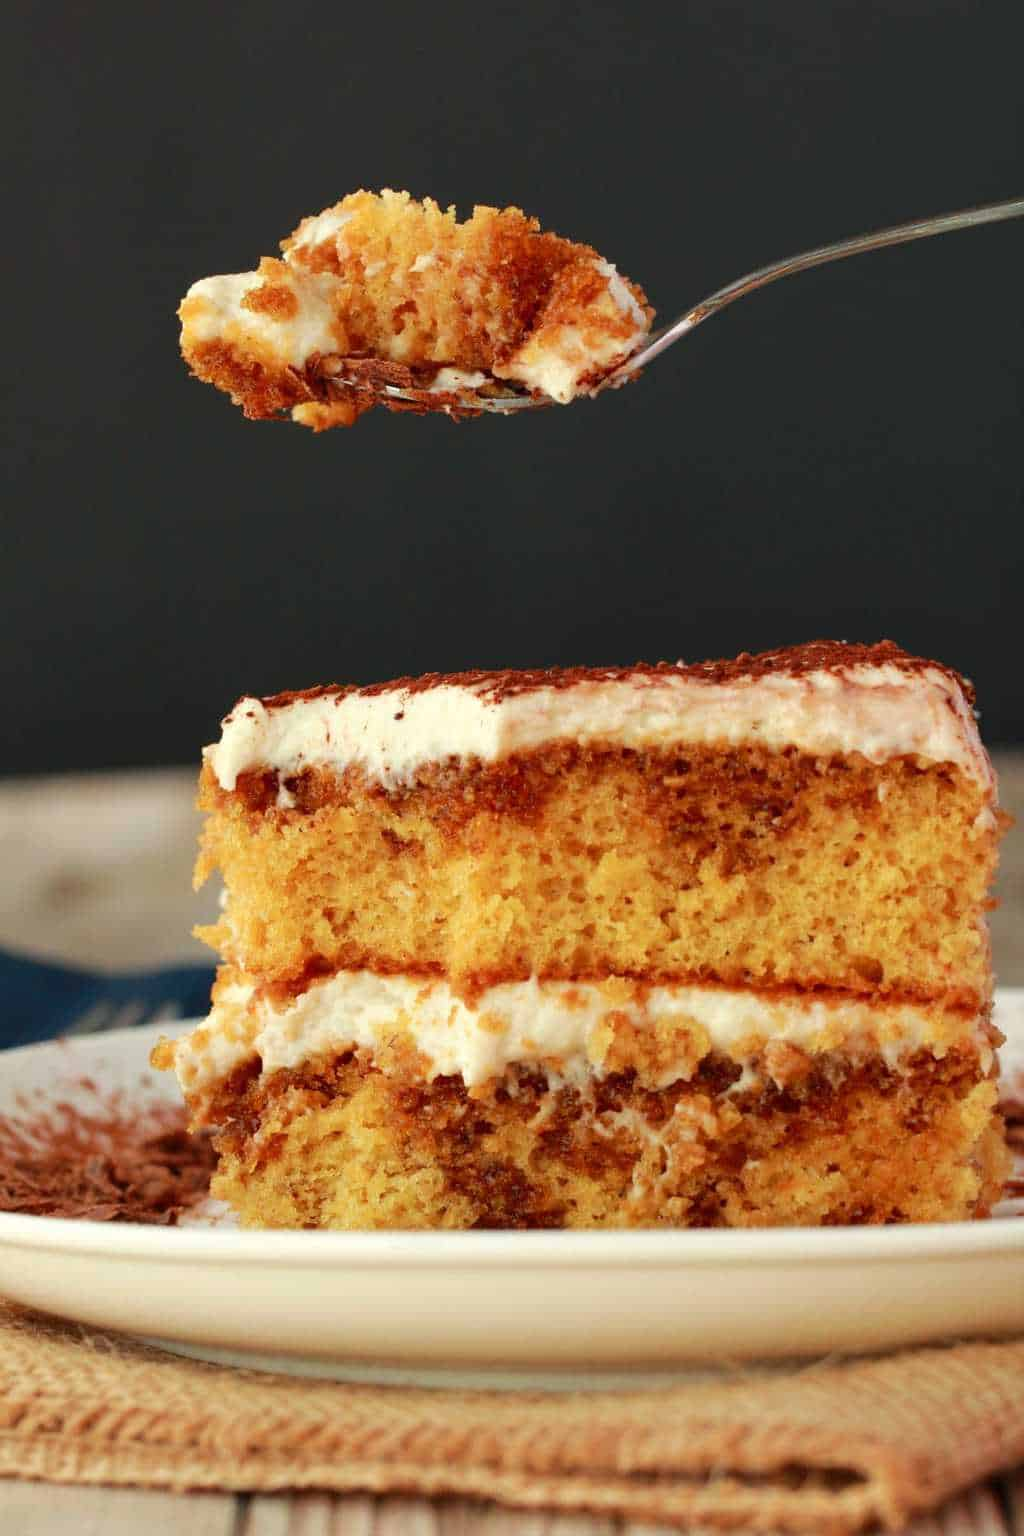 A slice of vegan tiramisu with a spoonful of tiramisu hovering over it.